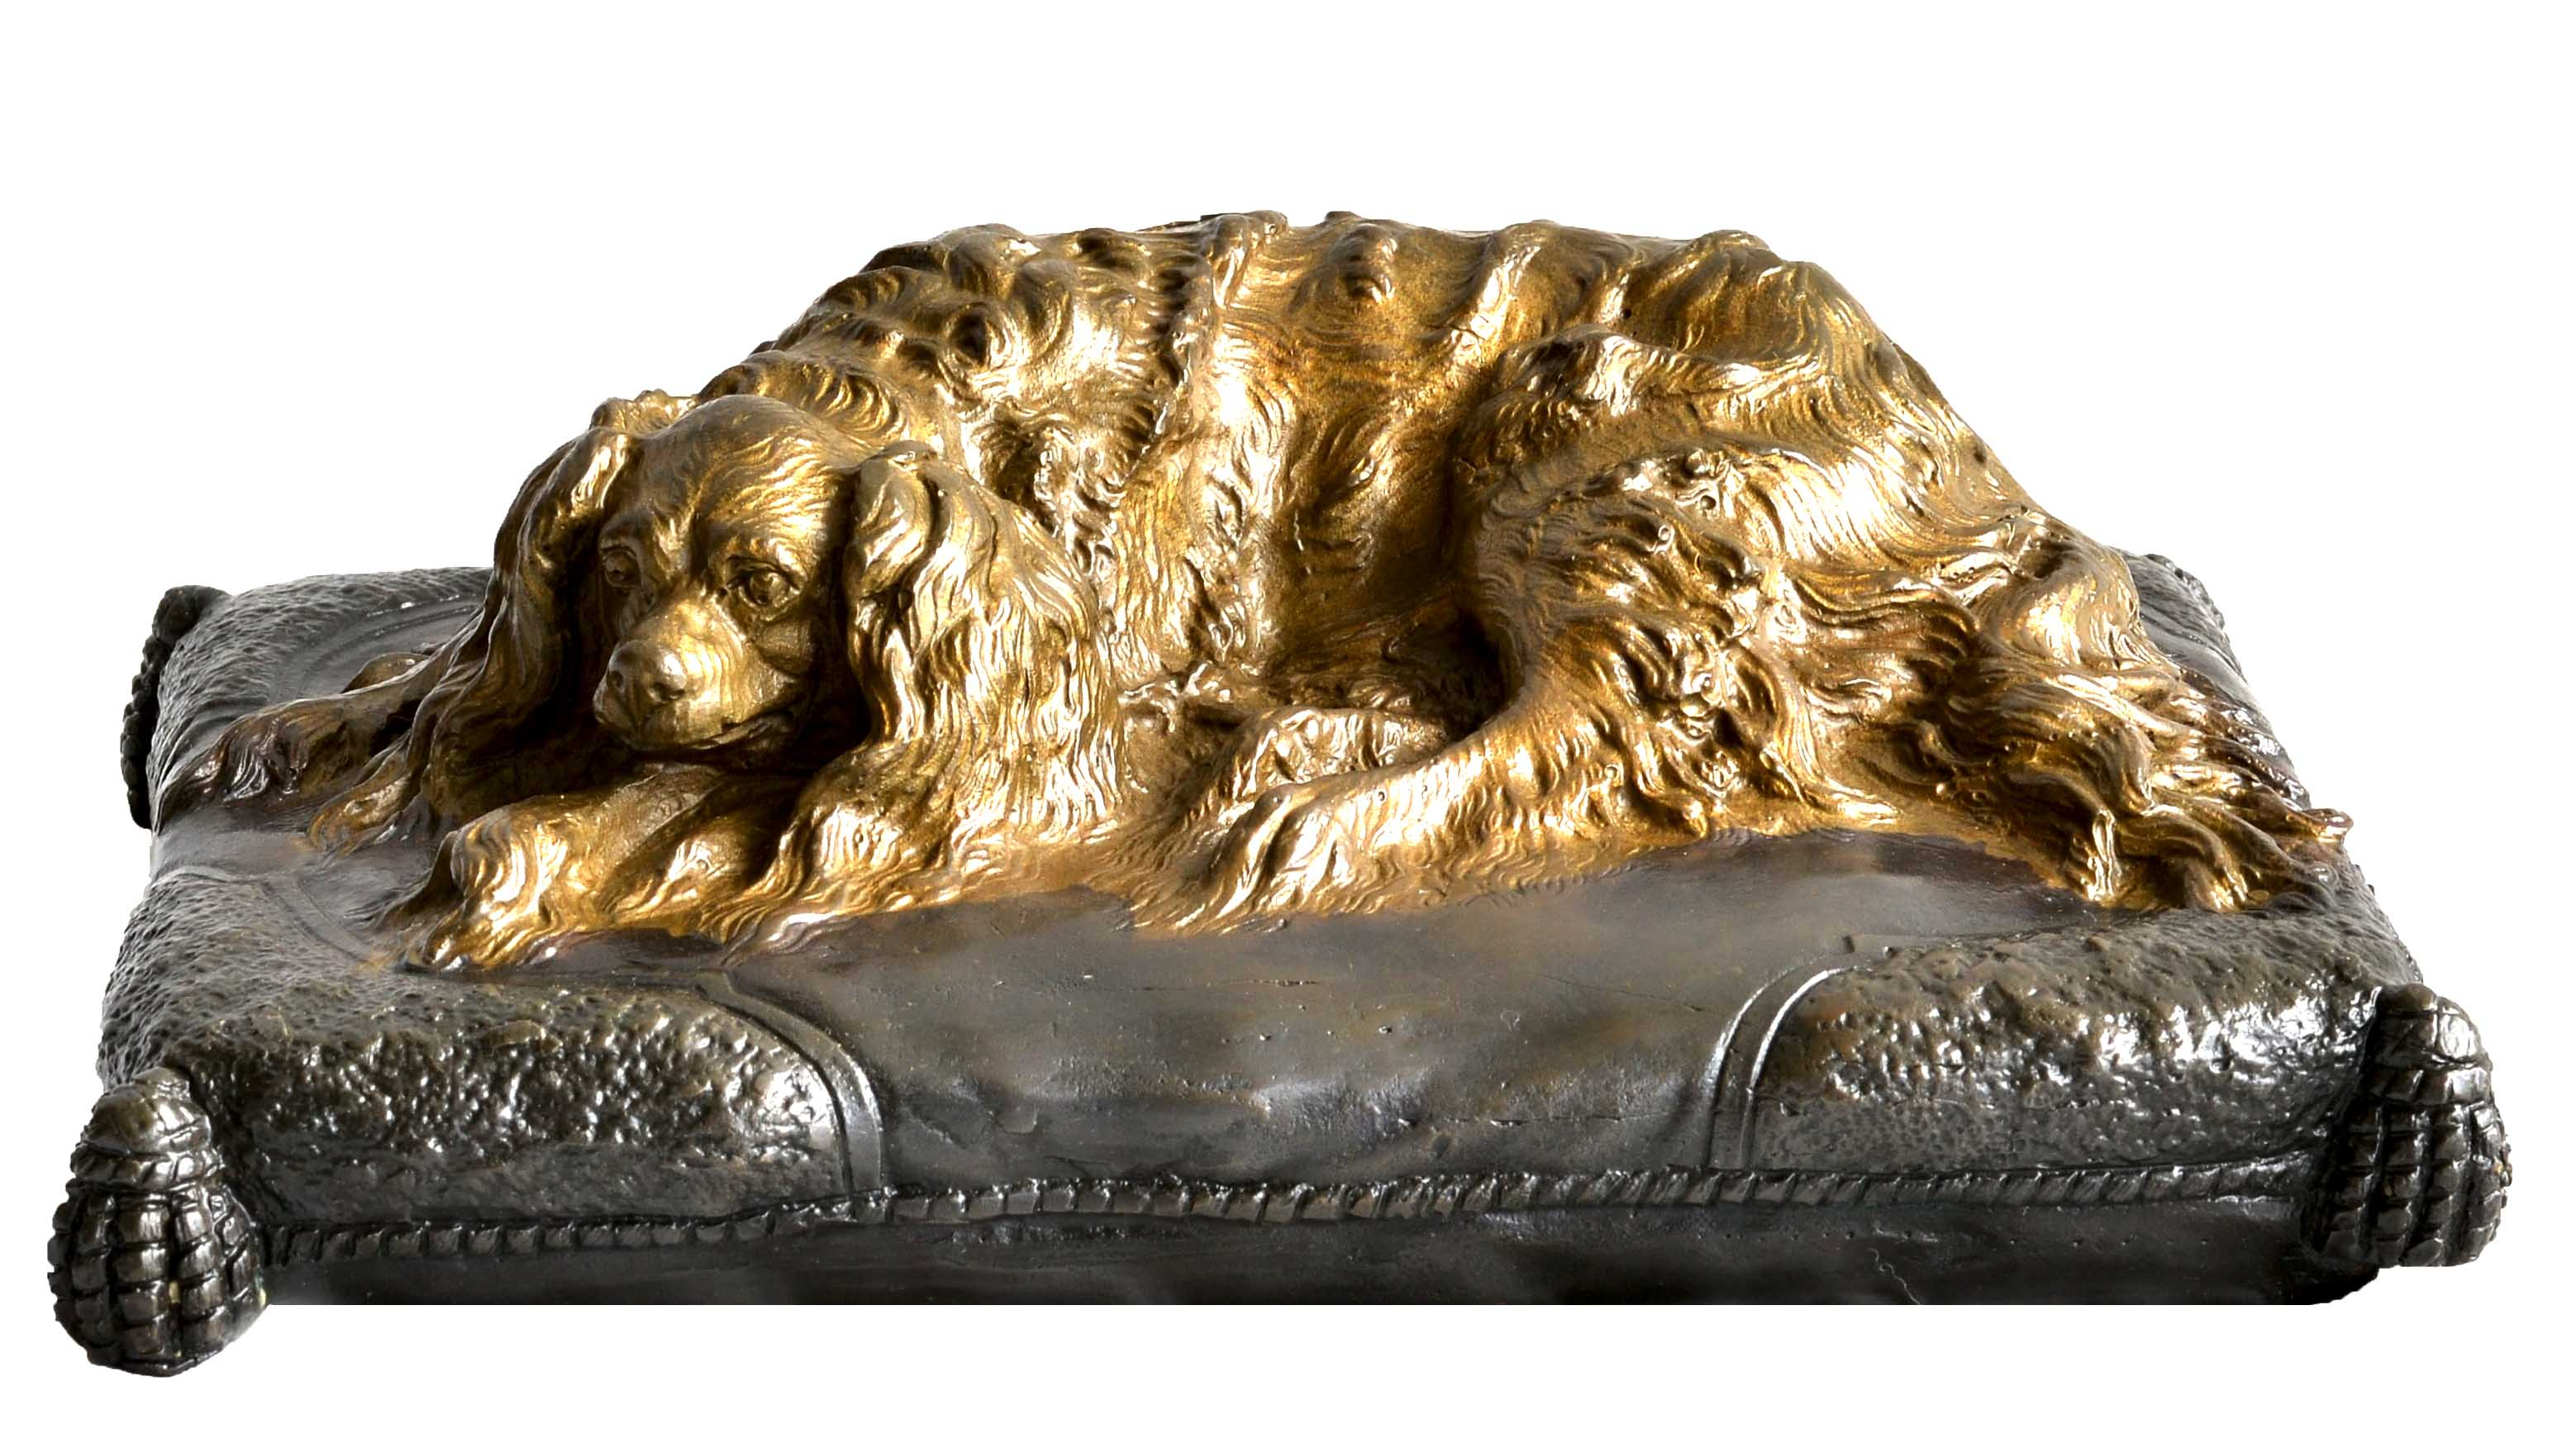 Click to see full size: Bronze King Charles Cavalier Spaniel recumbent upon a tasselled cushion by Emmanuel Fr?miet (1824 -1910)  An early small and very detailed bronze which Fr?miet cast himself from his workshop and foundry at 42 Boulevard du Temple. This Spaniel bronze is es